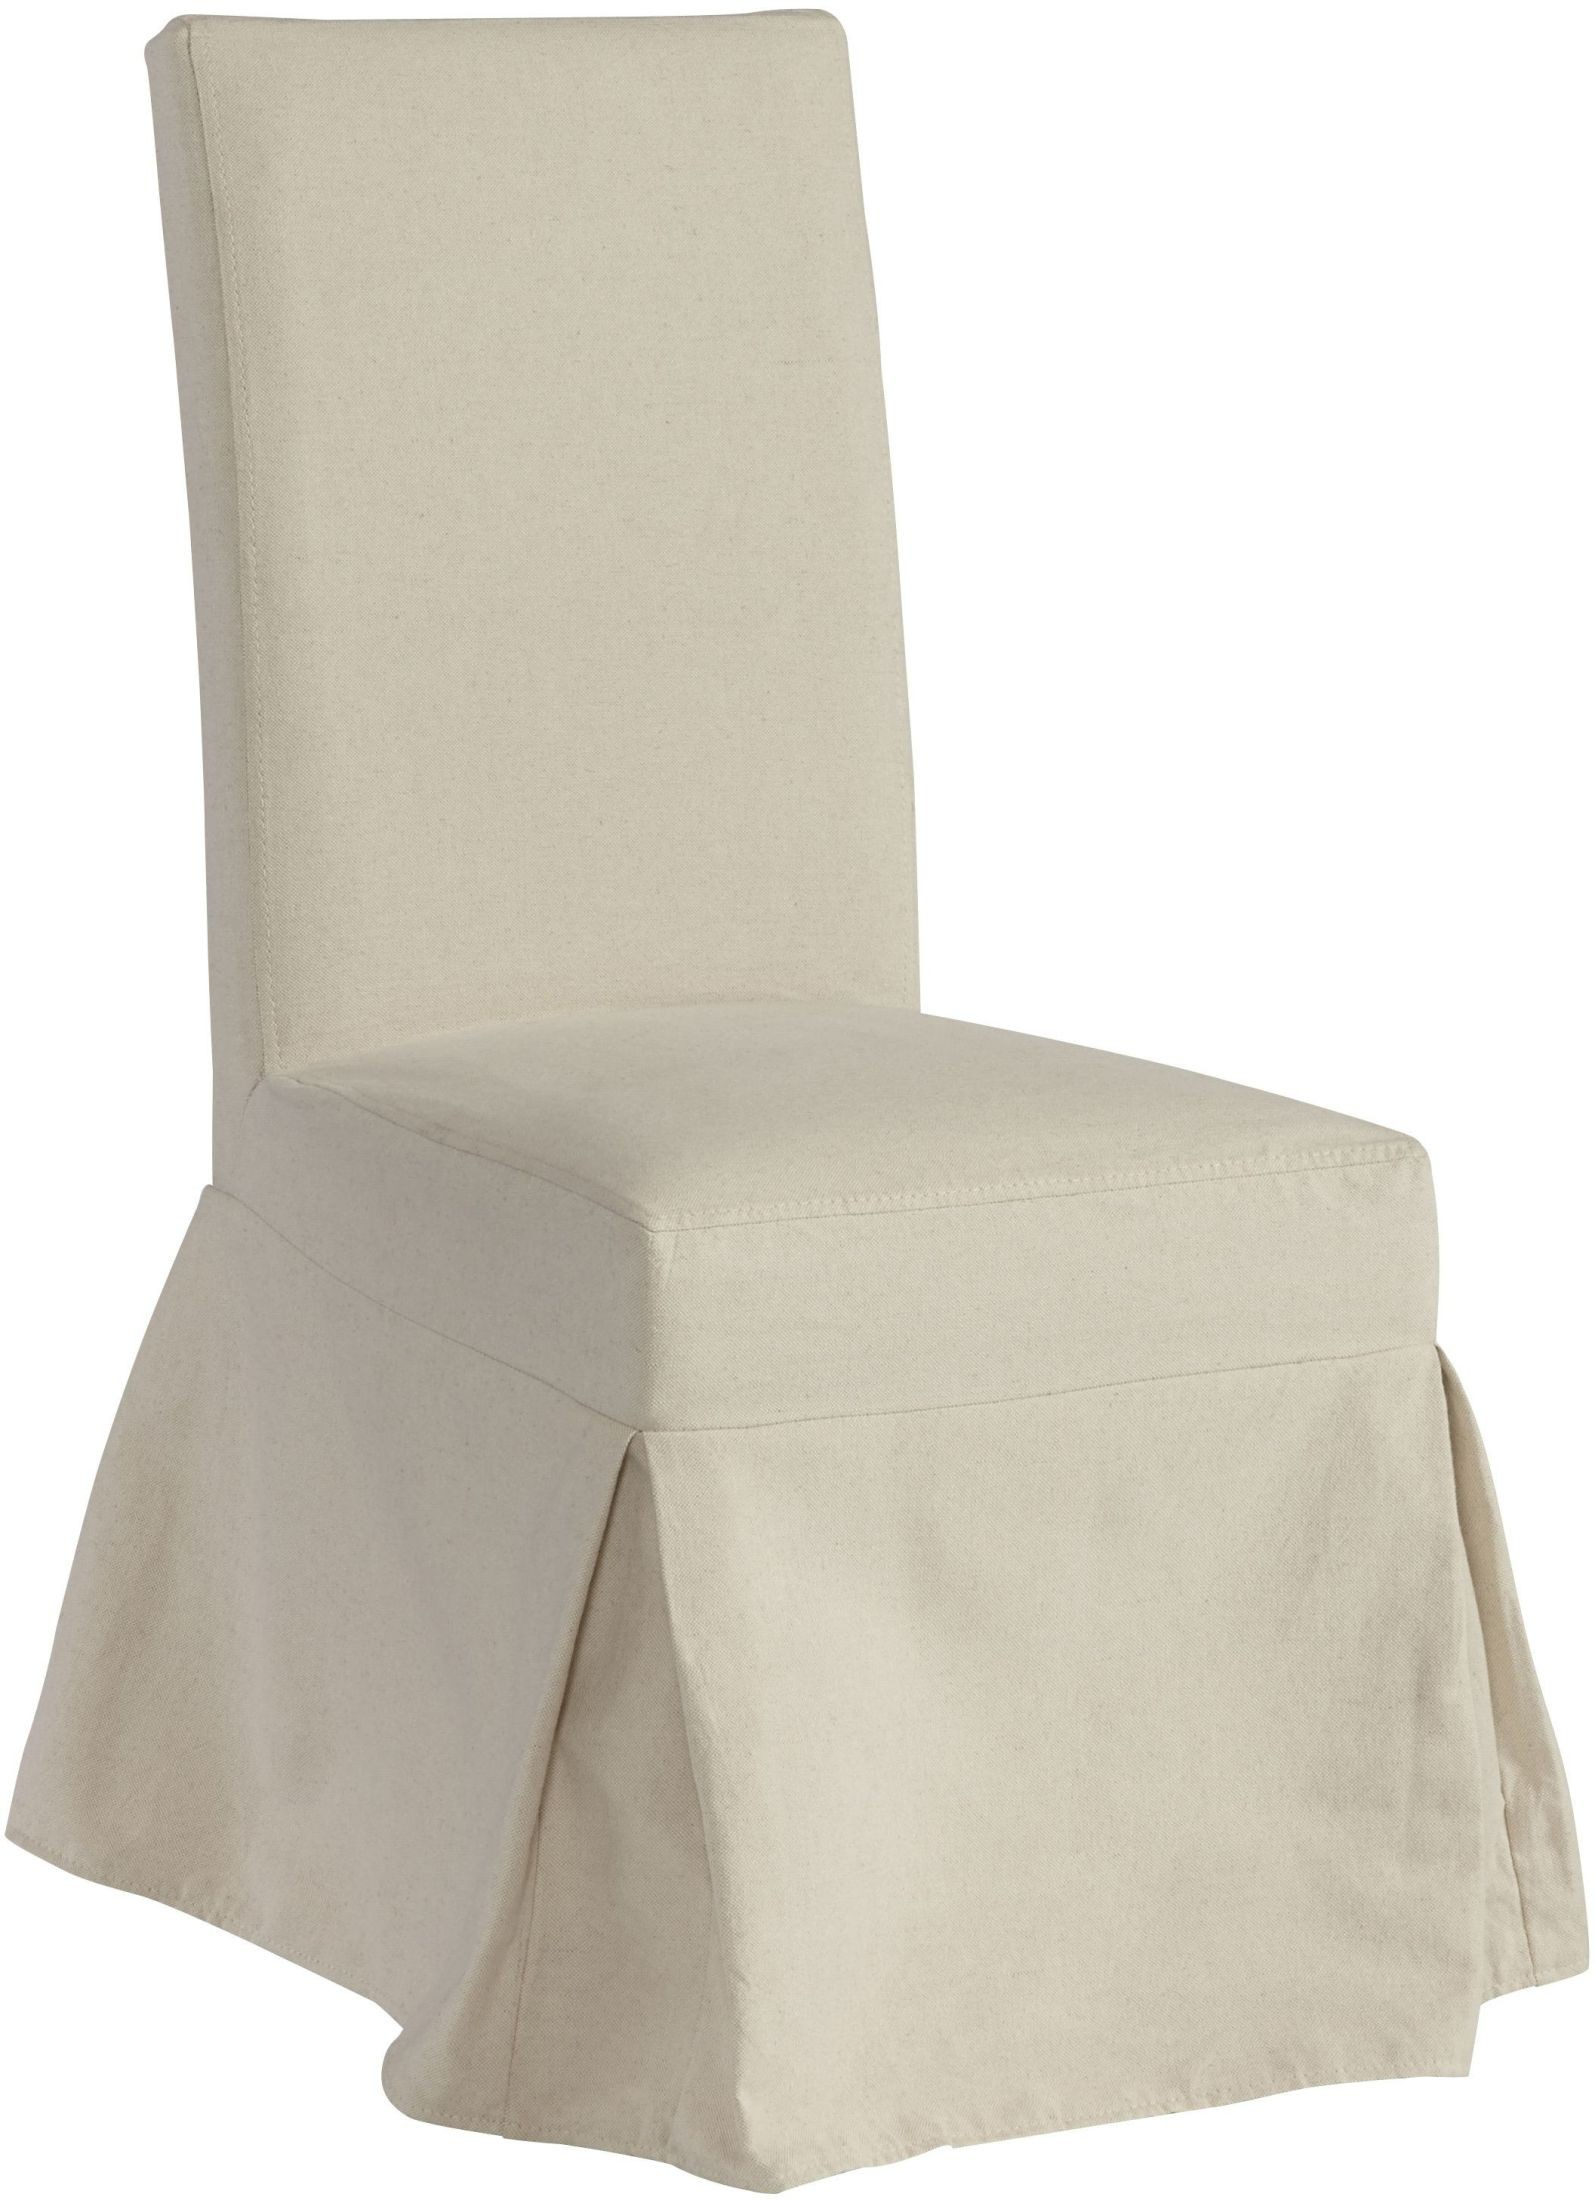 off white dining chair covers linen office charlotte slipcover set of 2 from